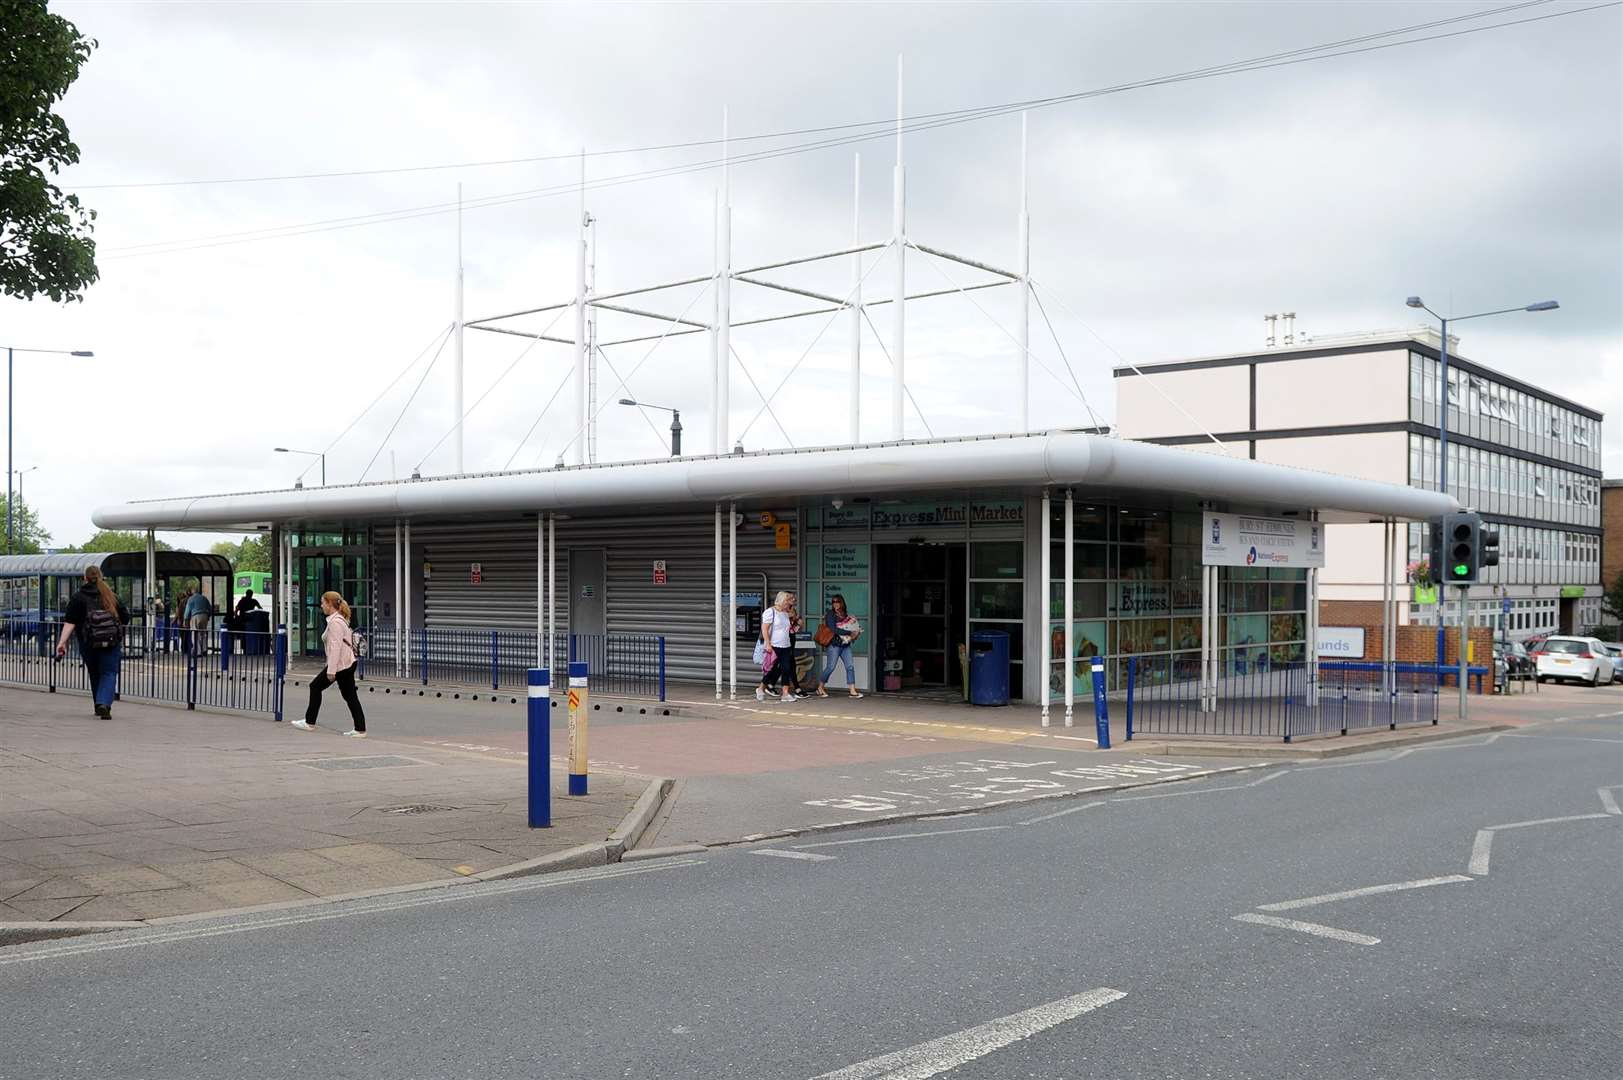 Bury St Edmunds bus station. Picture by Mecha Morton